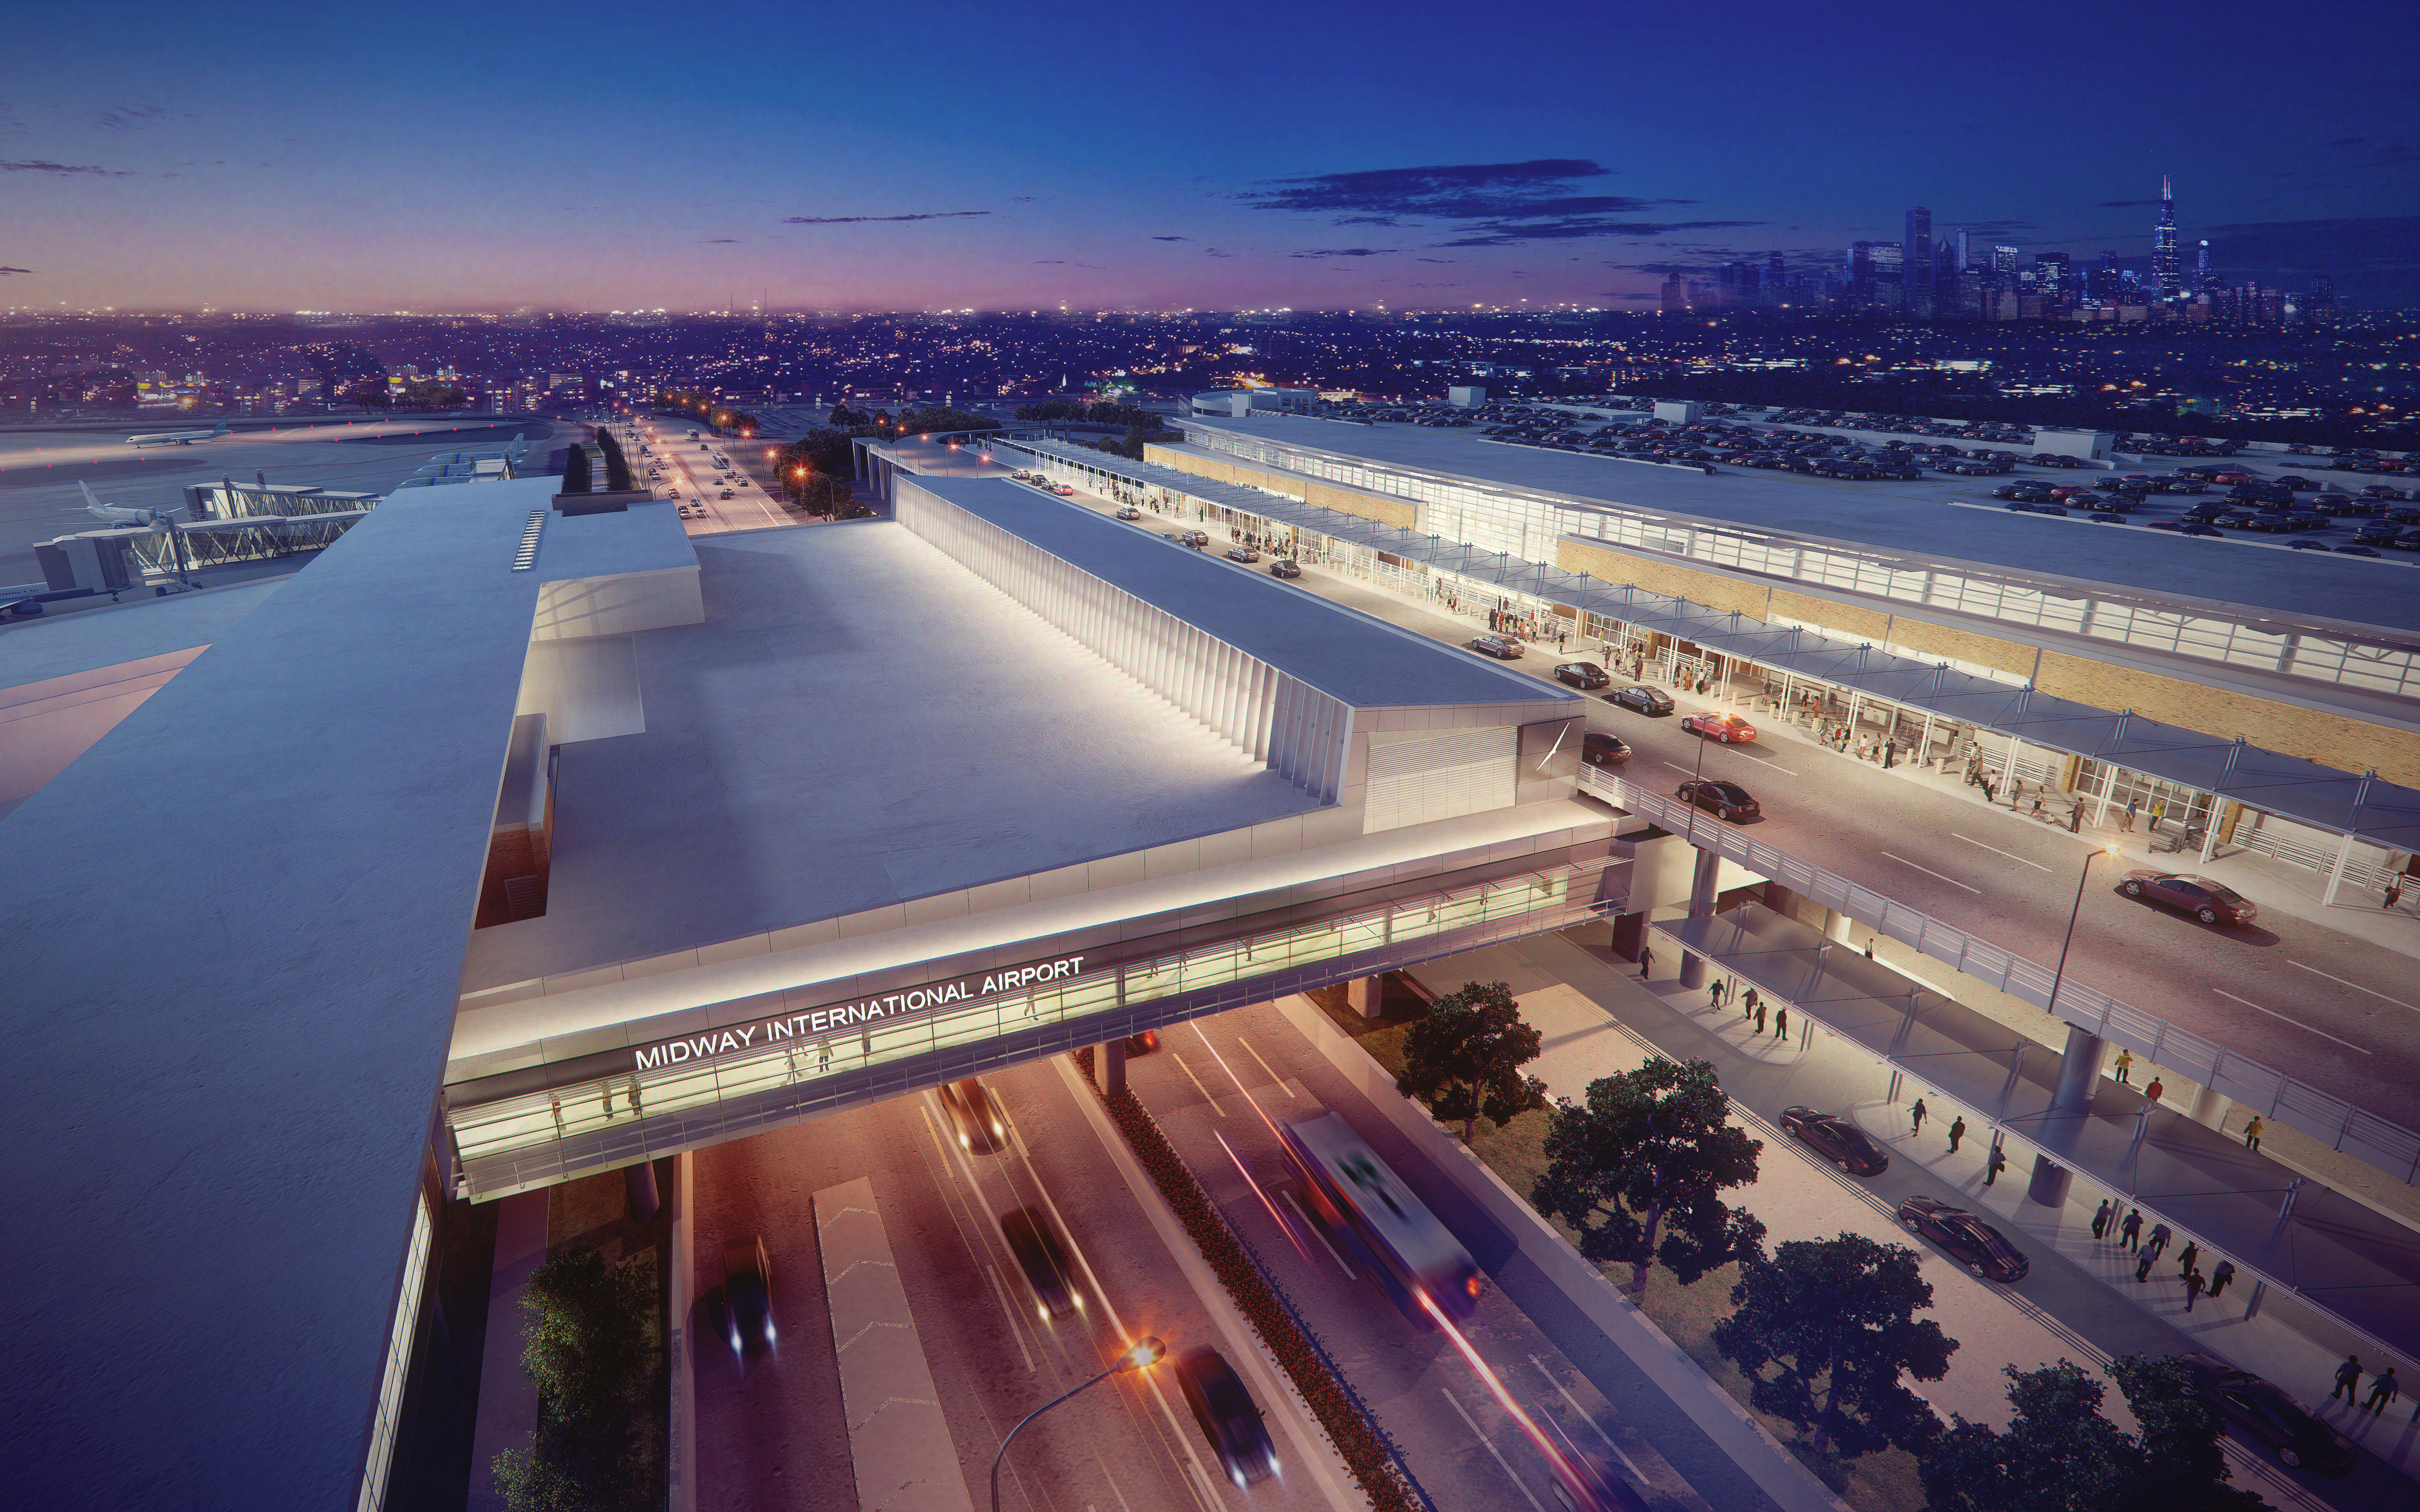 Work Underway On New New Security Pavilion At Midway